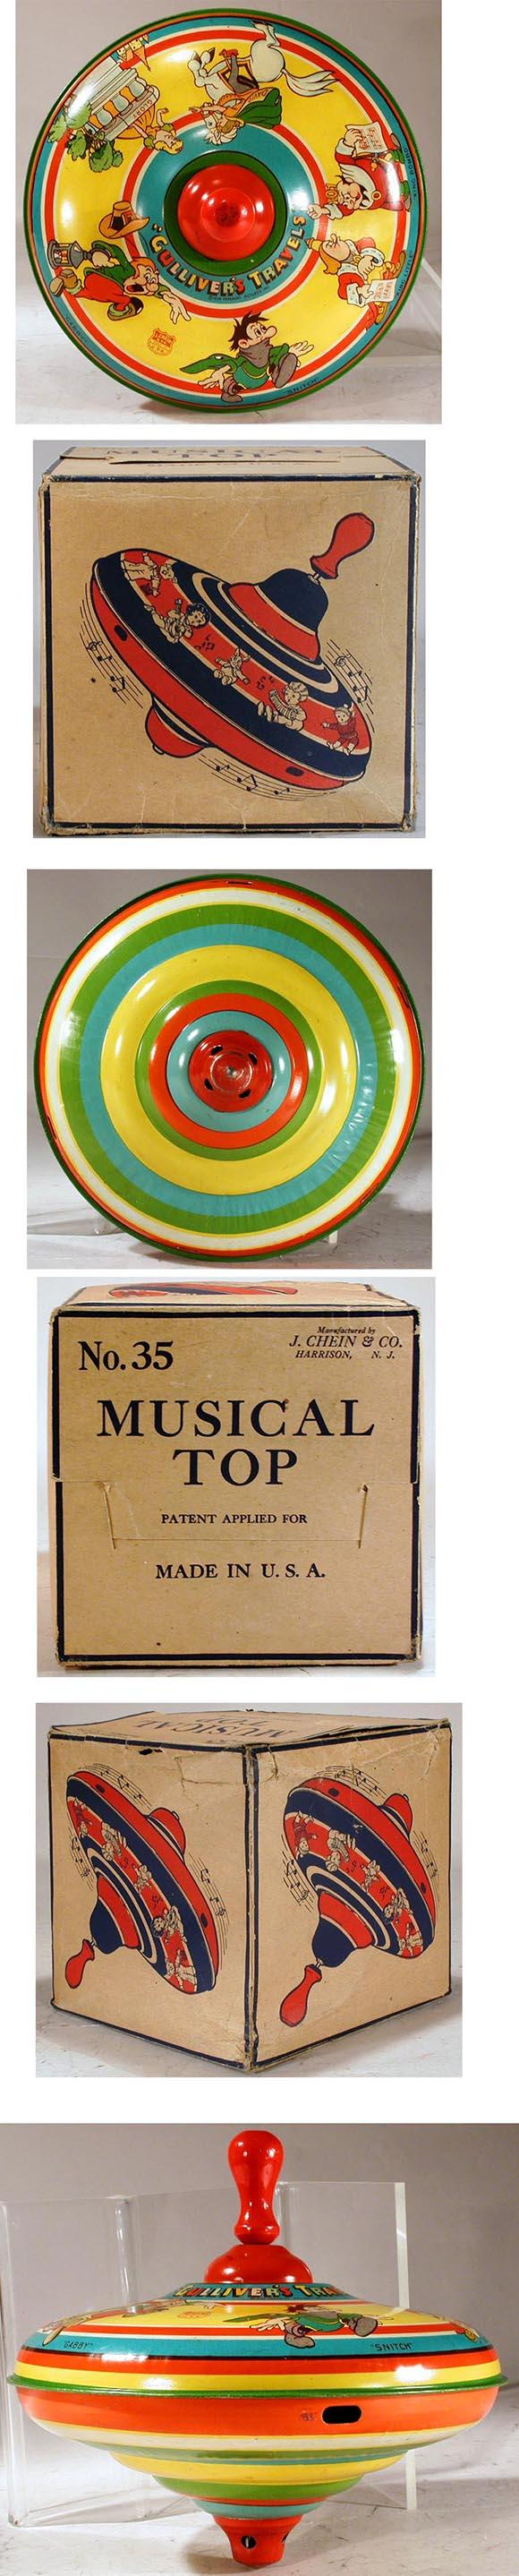 c.1939 Chein, No.35 Gulliver's Travels Musical Top in Original Box